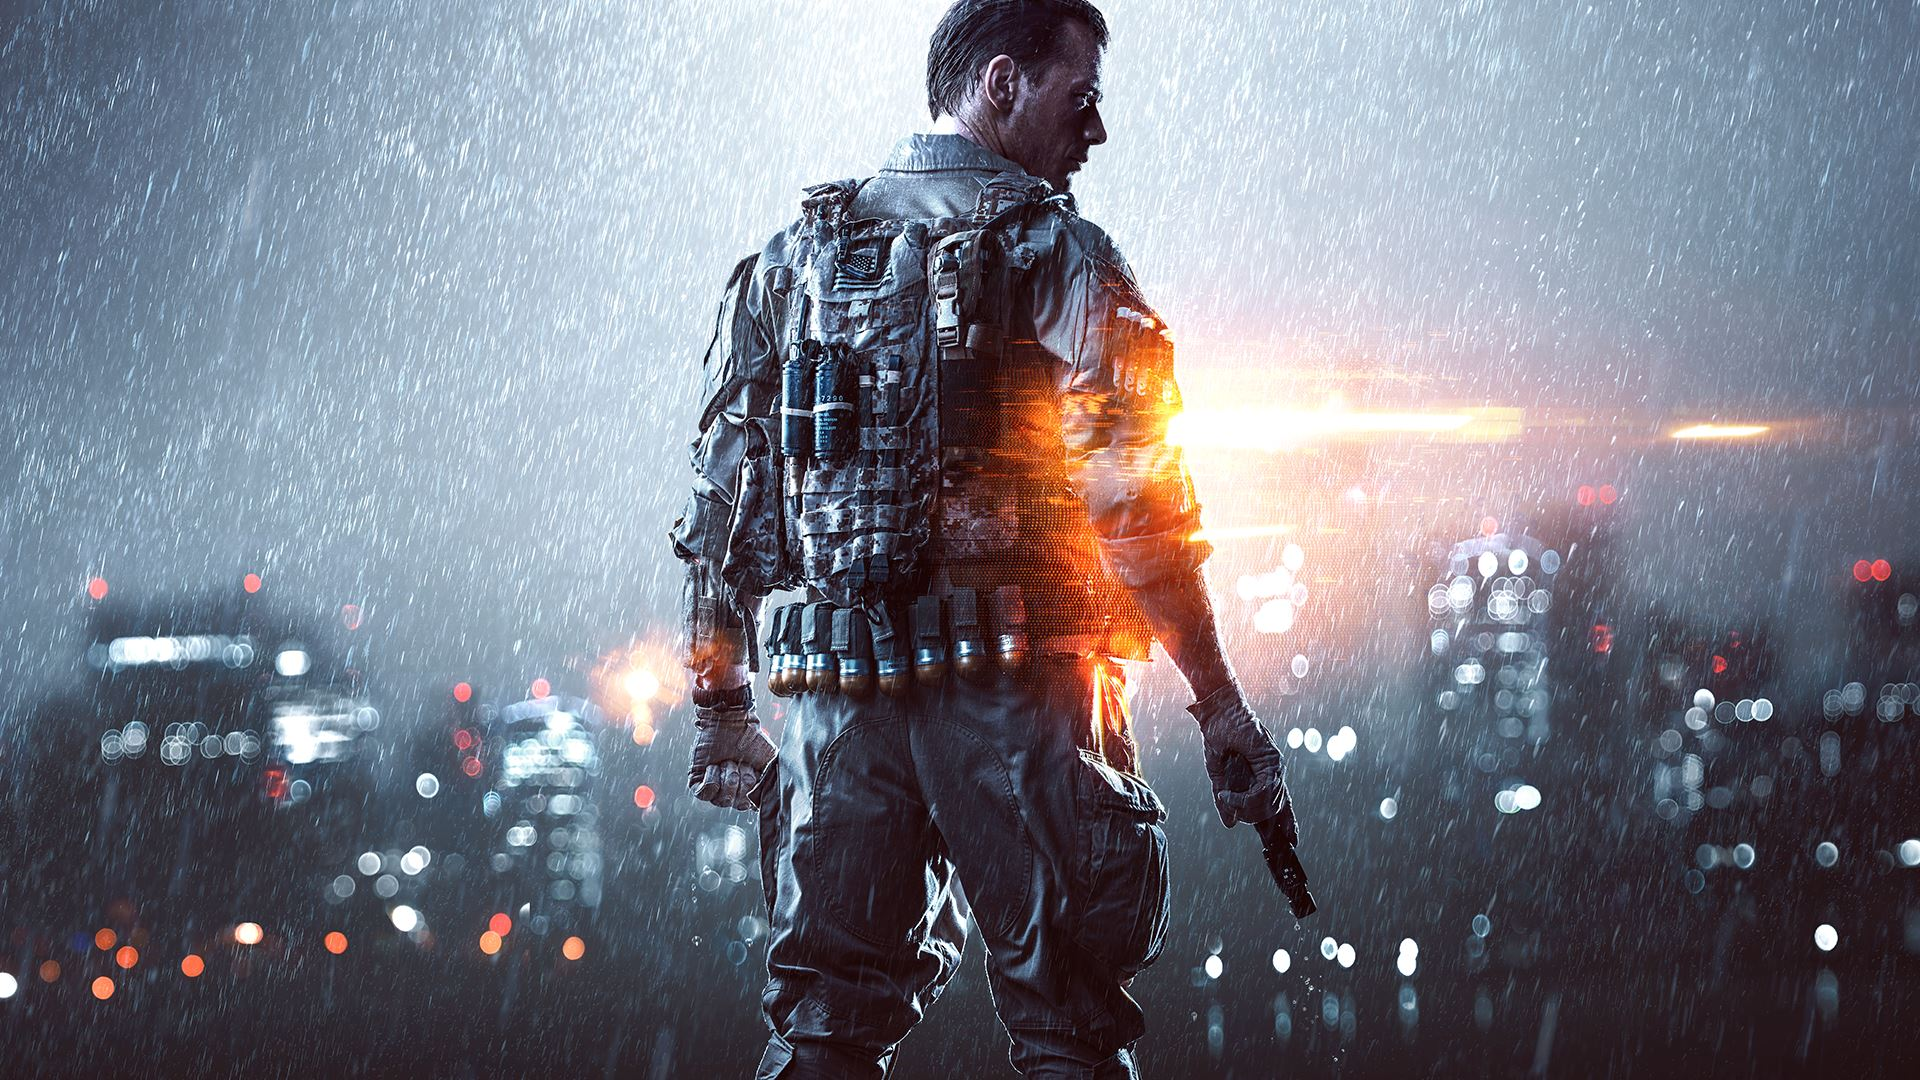 Some dice members moving from star wars battlefront to - Bf4 wallpaper ...